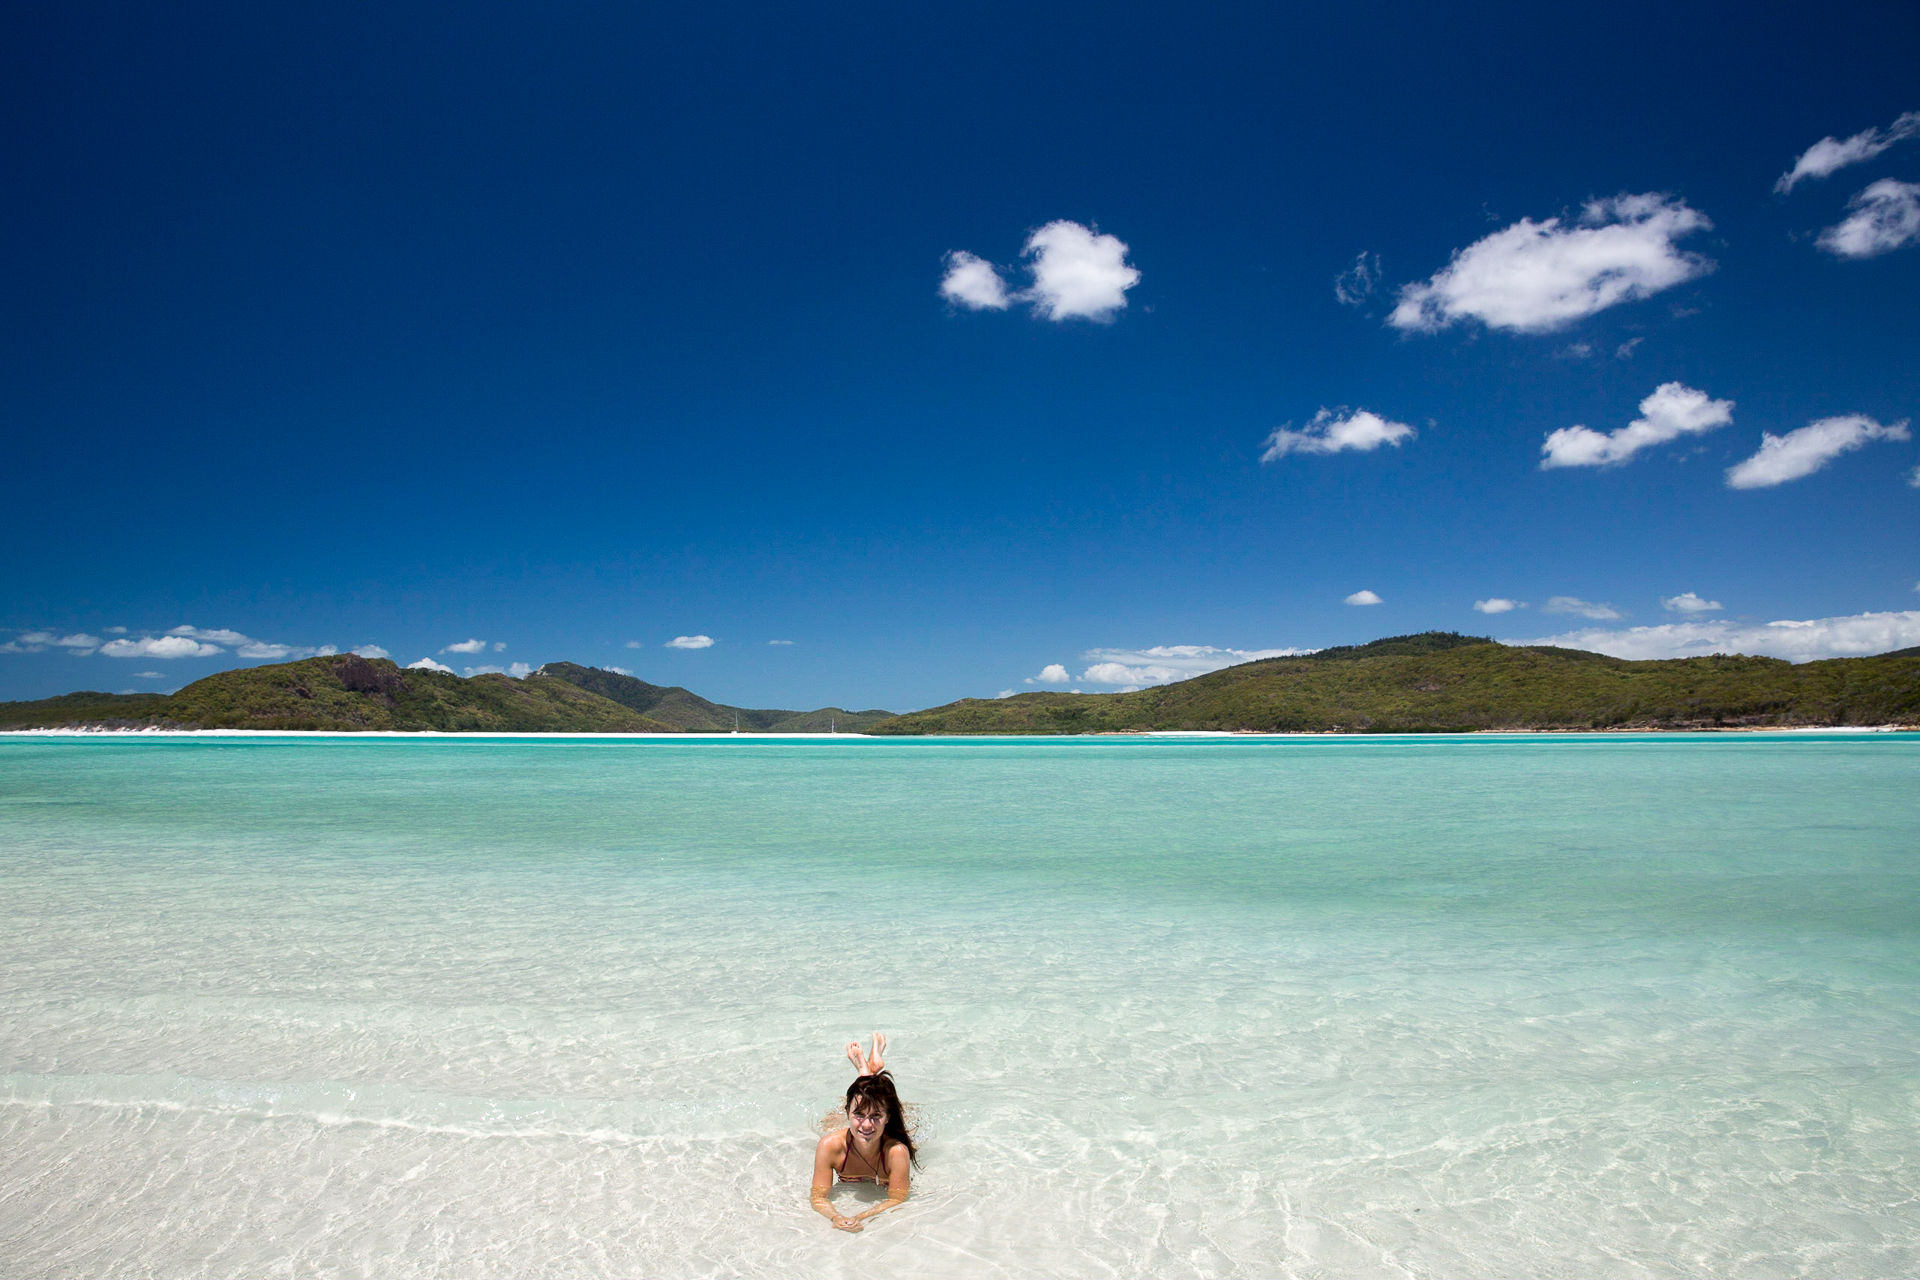 Bild: Baden am Whithaven Beach auf den Whitsunday Islands